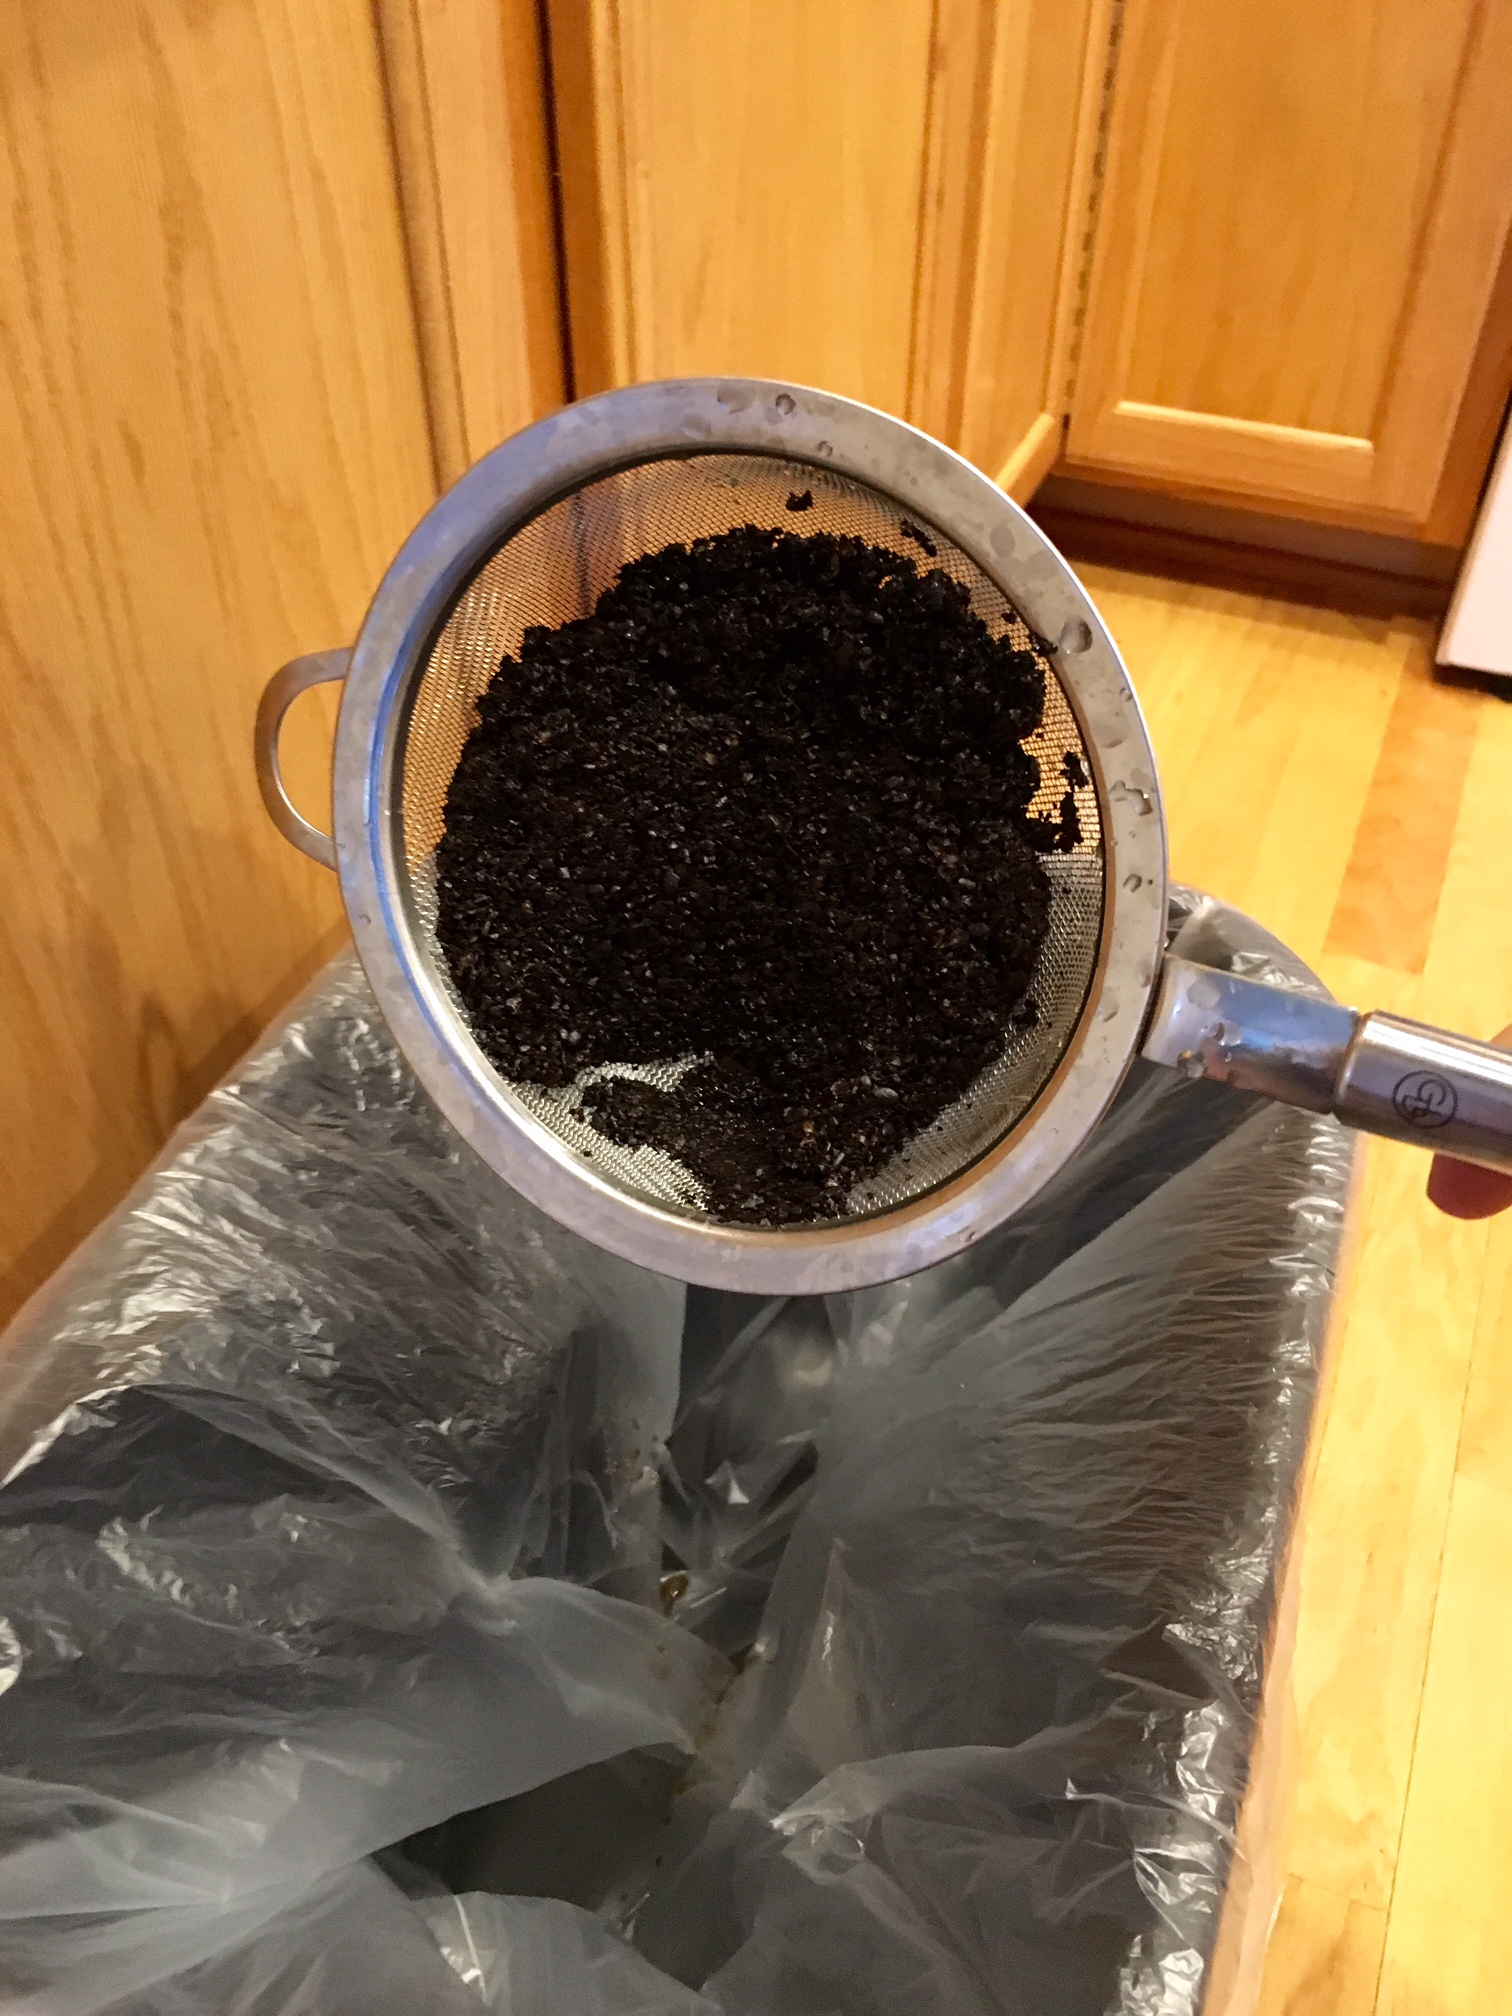 Picture of Dispose of Grounds